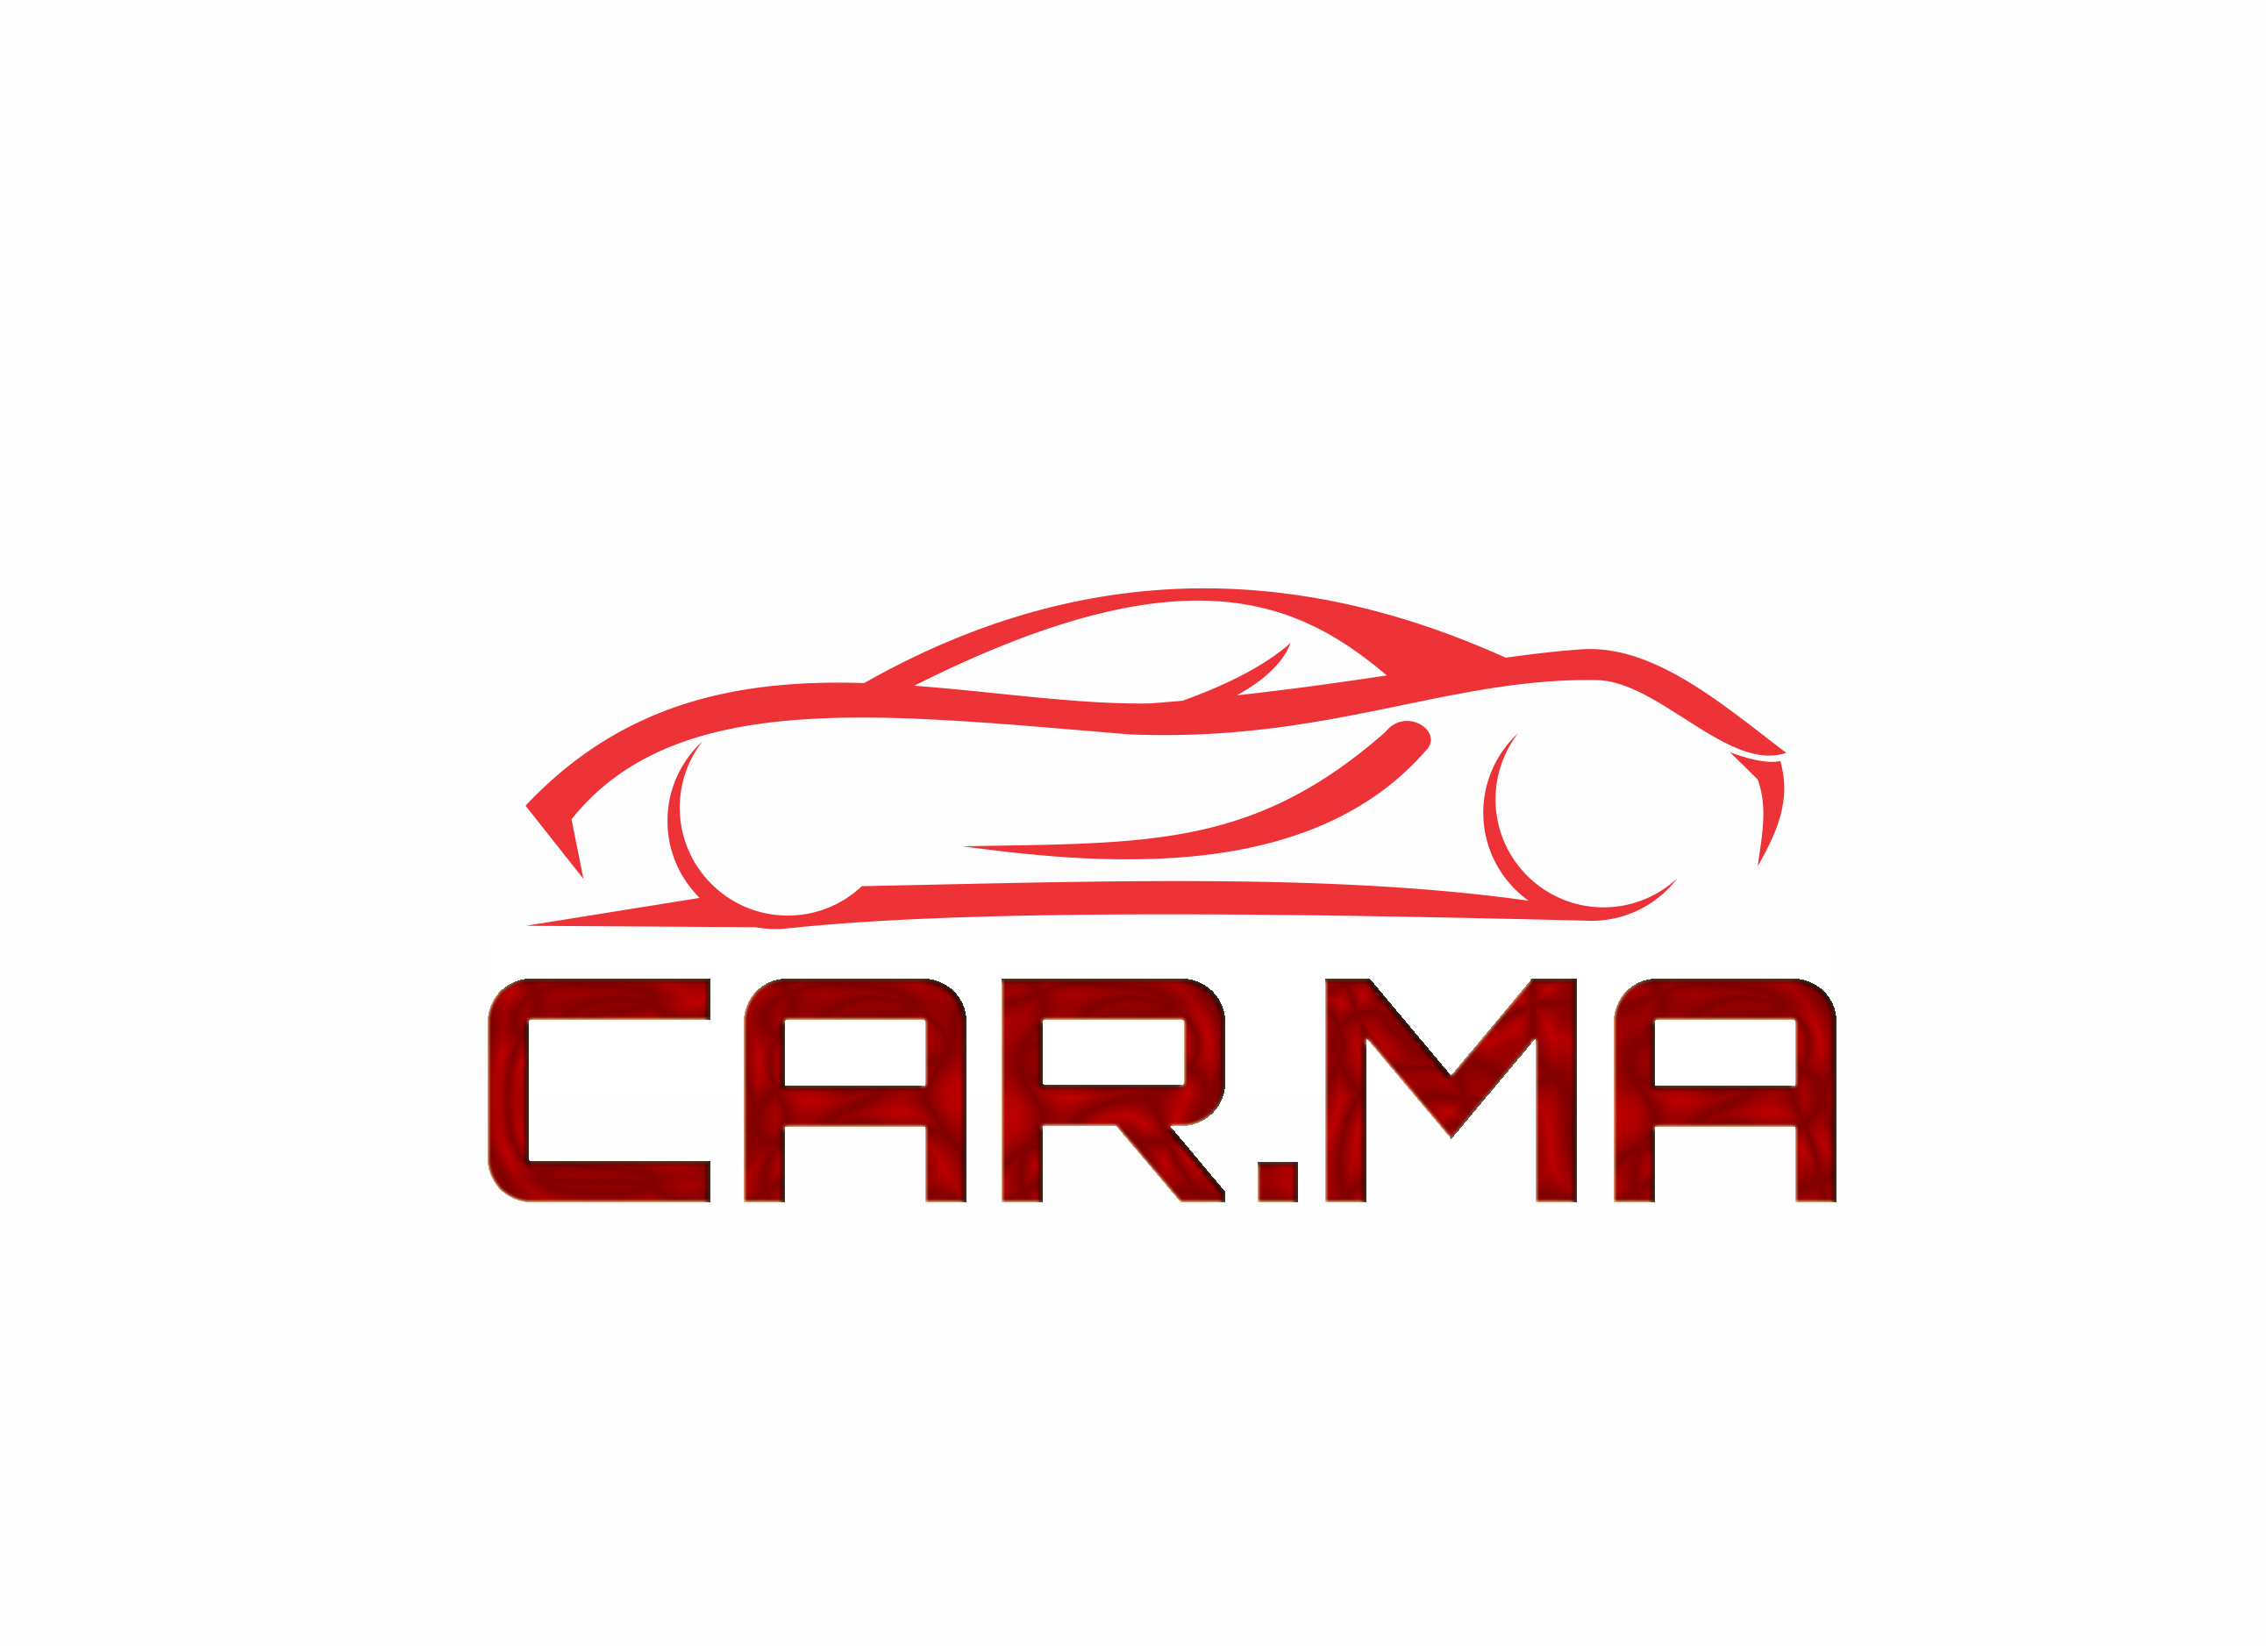 Logo Design by Shailesh Sharma - Entry No. 118 in the Logo Design Contest New Logo Design for car.ma.